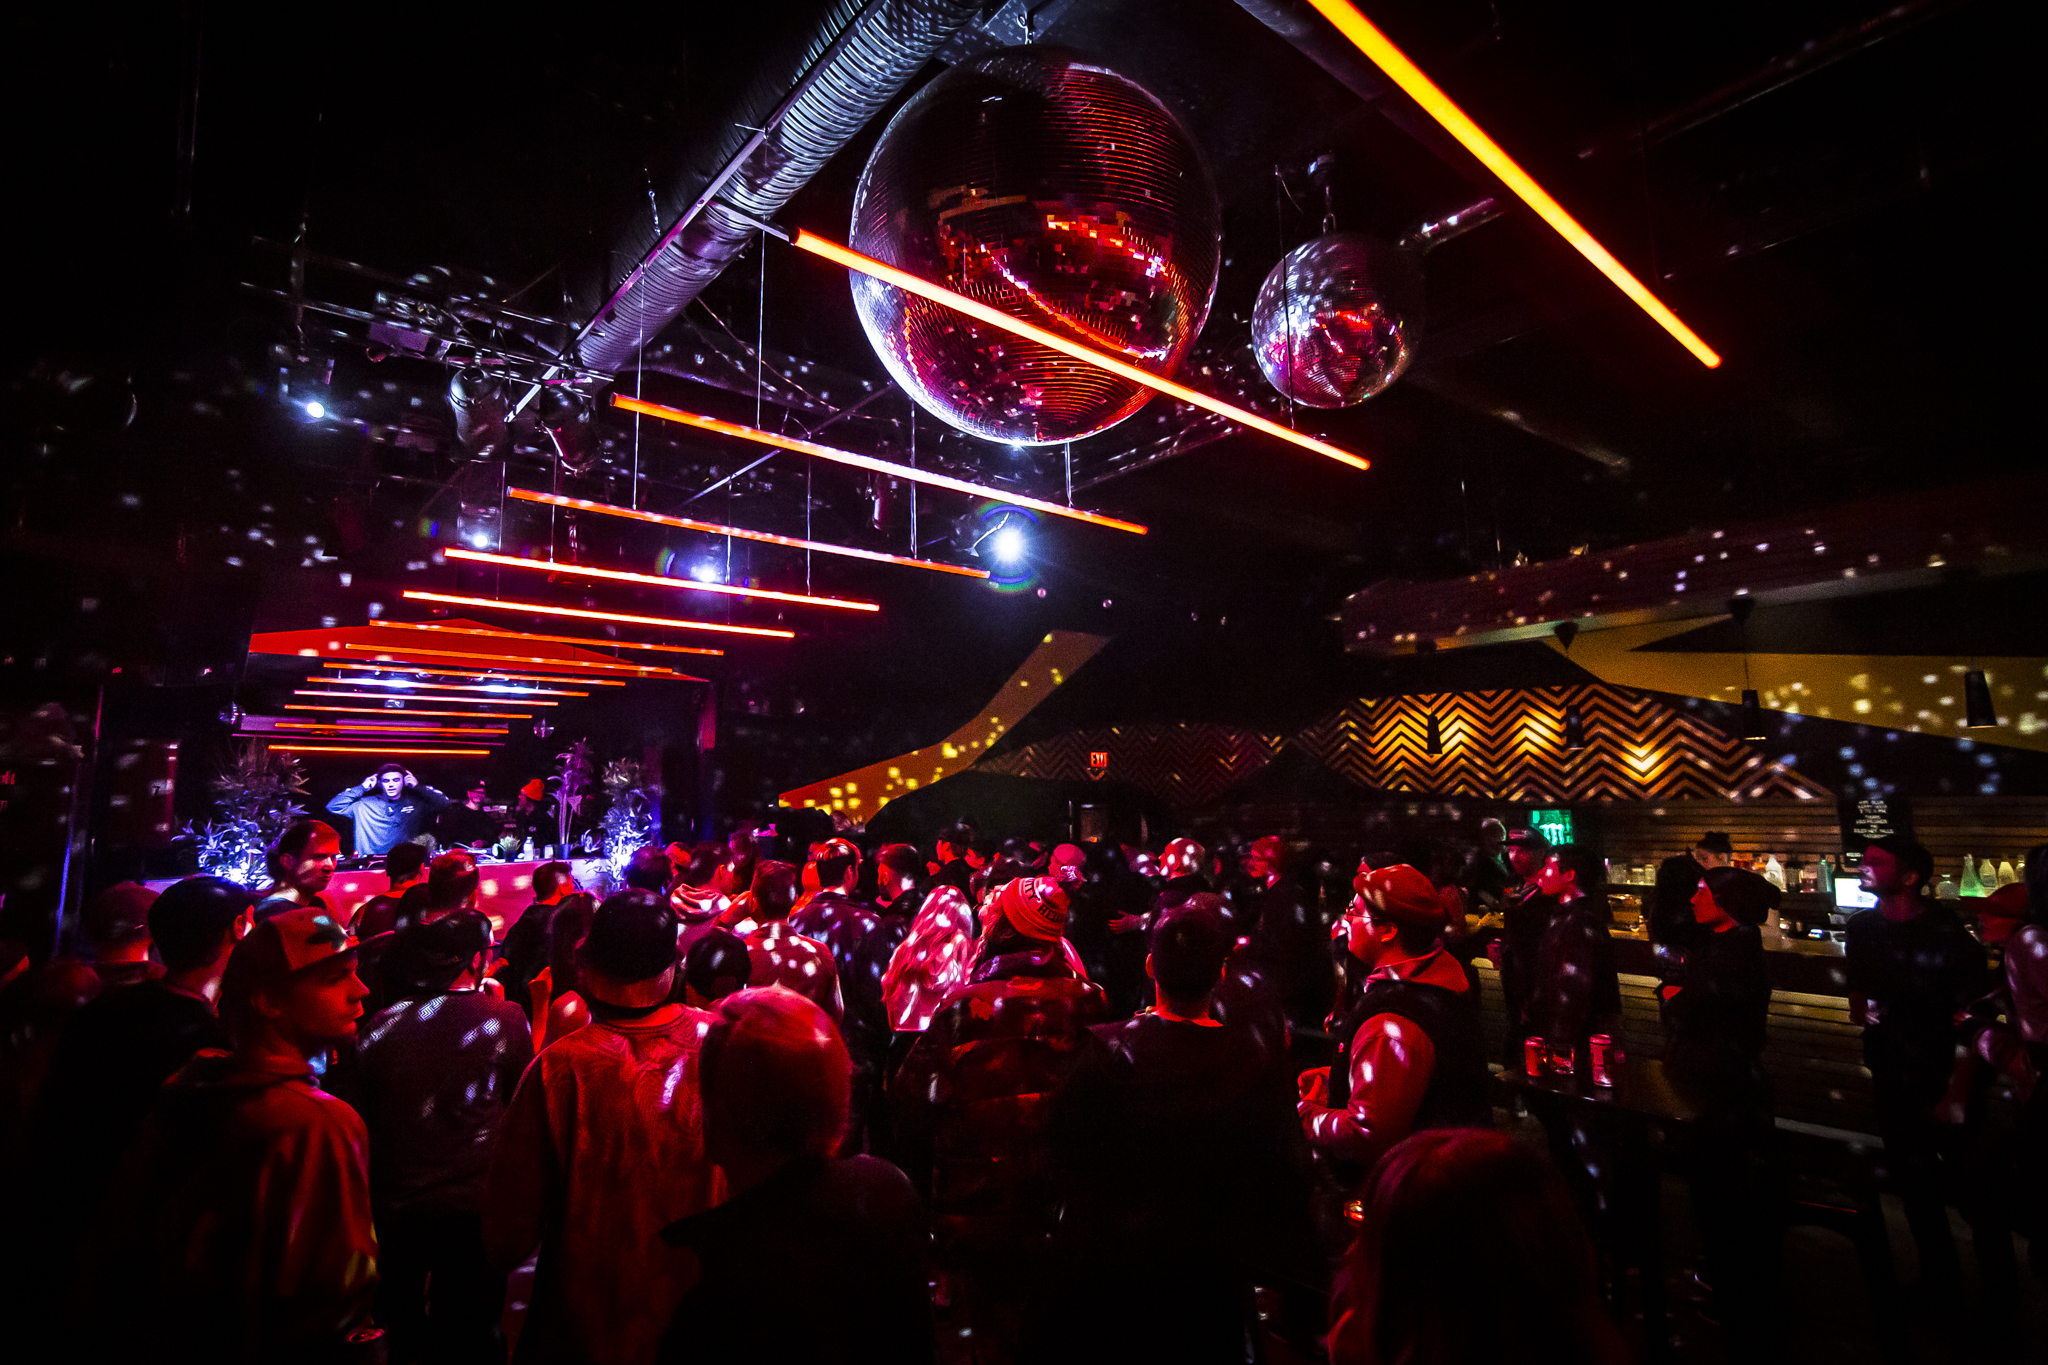 This permanent light installation at the Hifi Club was designed by Sergio SP. He will be in attendance to design a unique visual & lighting installation for Studio Bell After Hours. Photo: Neil McElmon (@ConcertSocks)